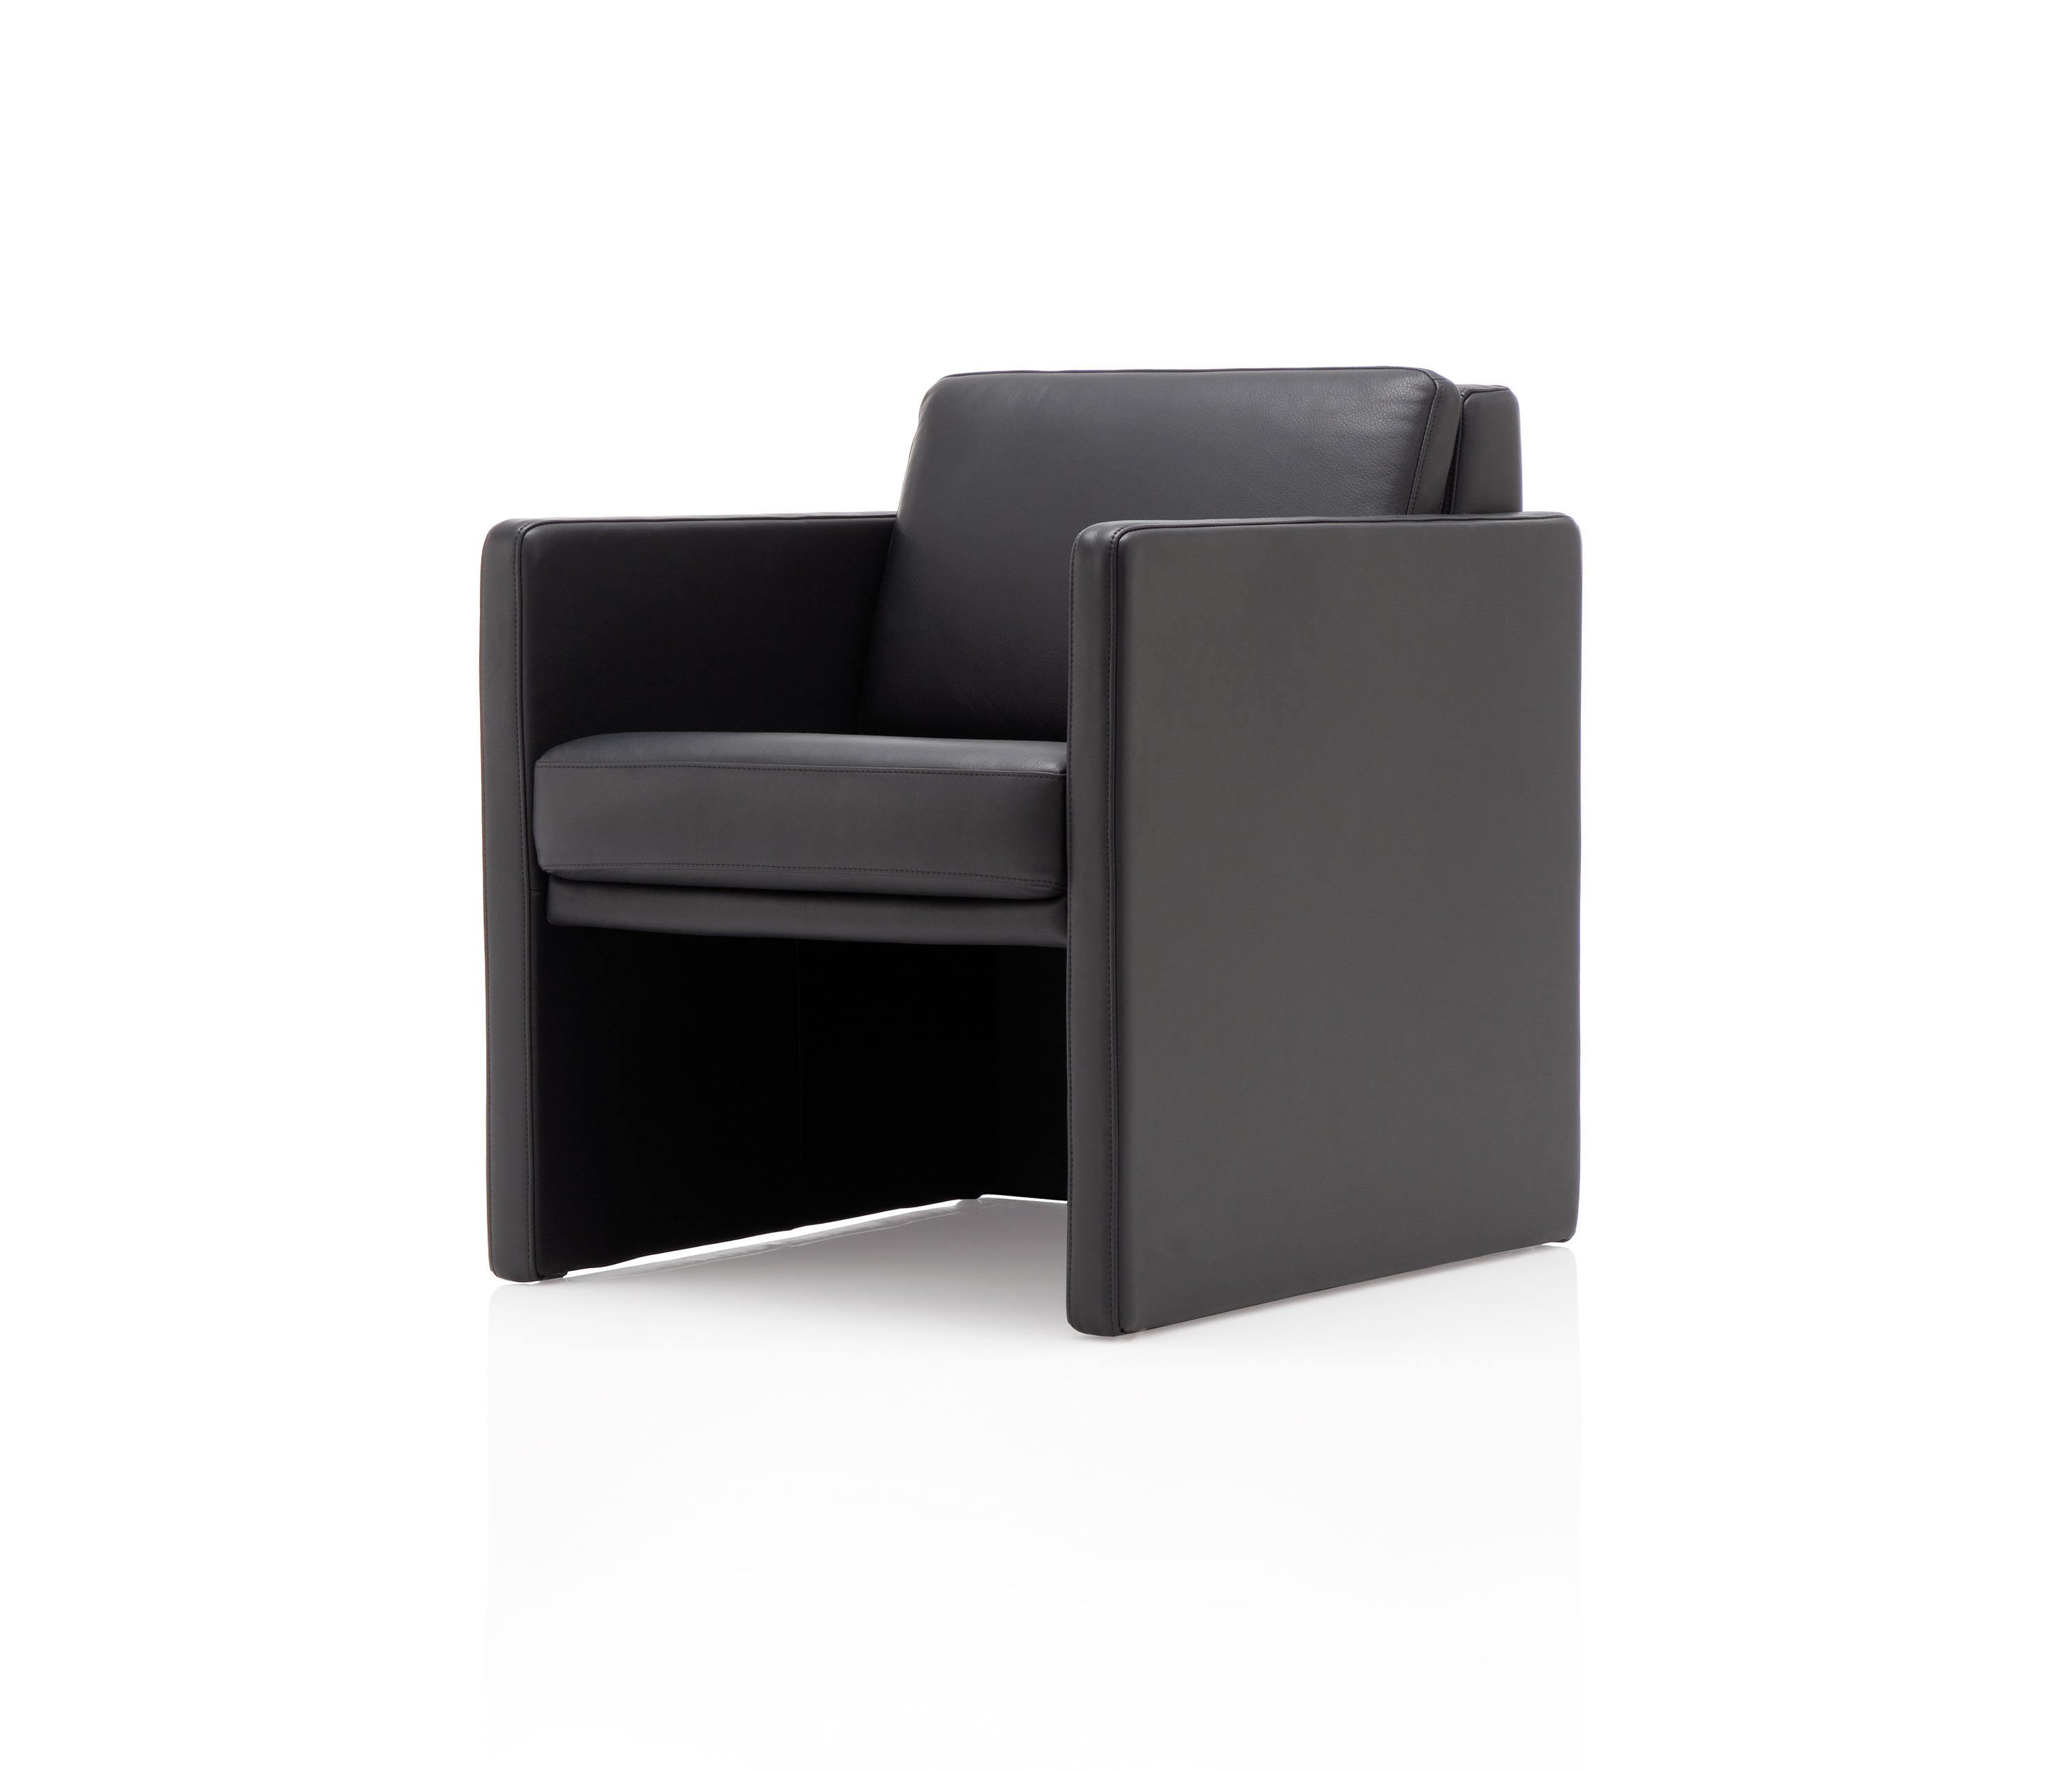 Rolf benz ego loungesessel von rolf benz architonic for Rolf benz katalog